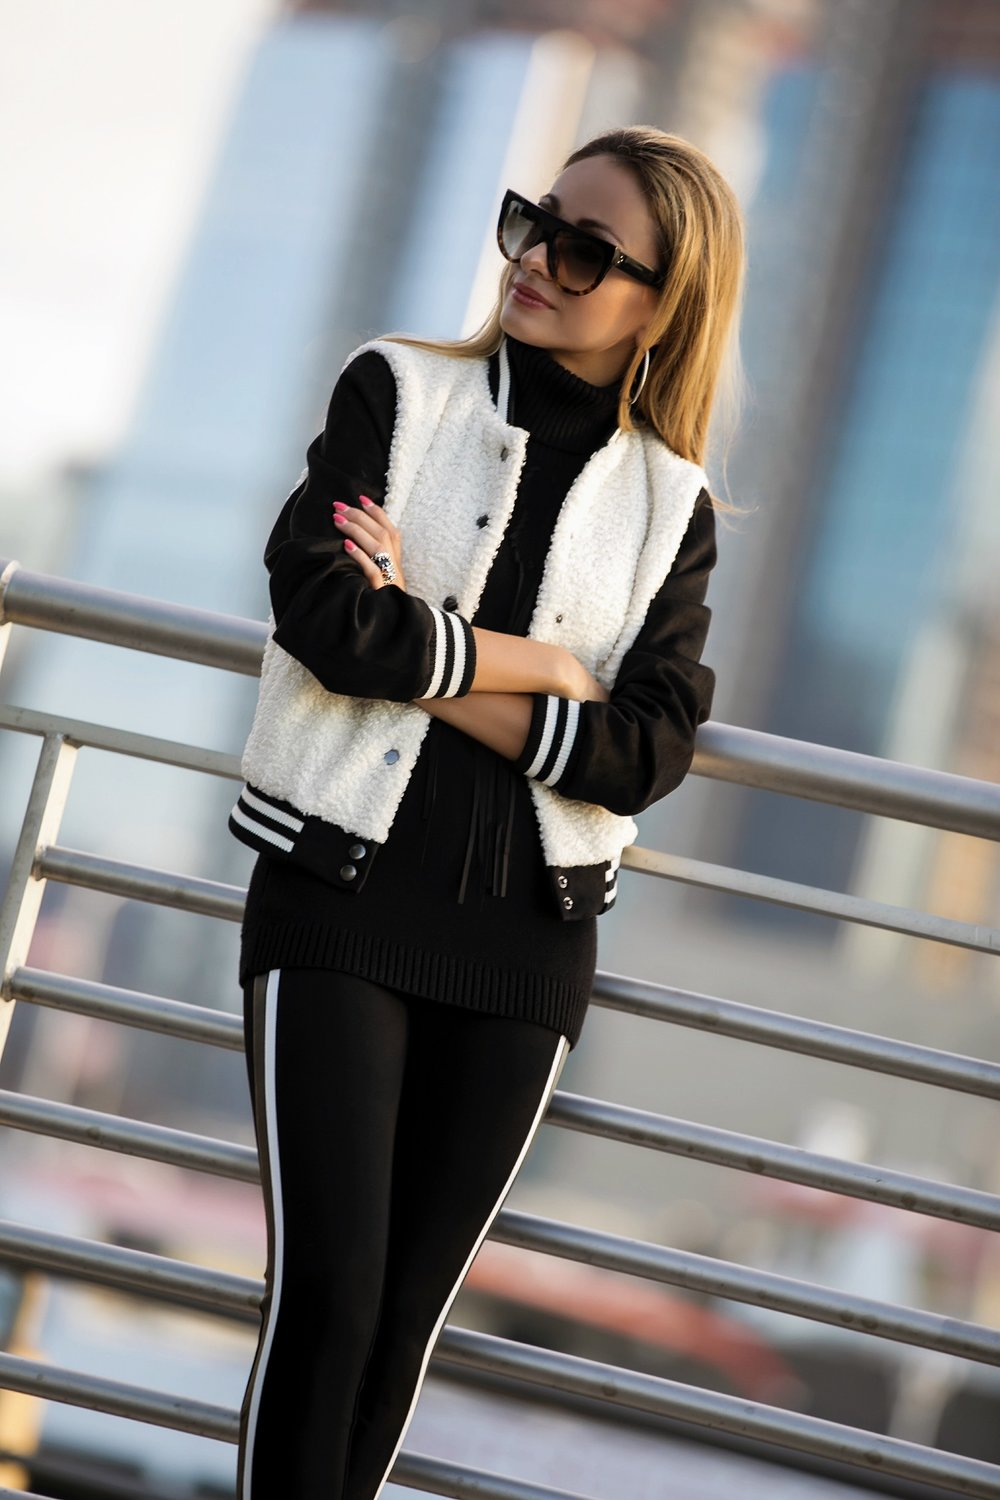 Lauren Recchia in NYC wearing a shearling bomber jacket and stirrup leggings